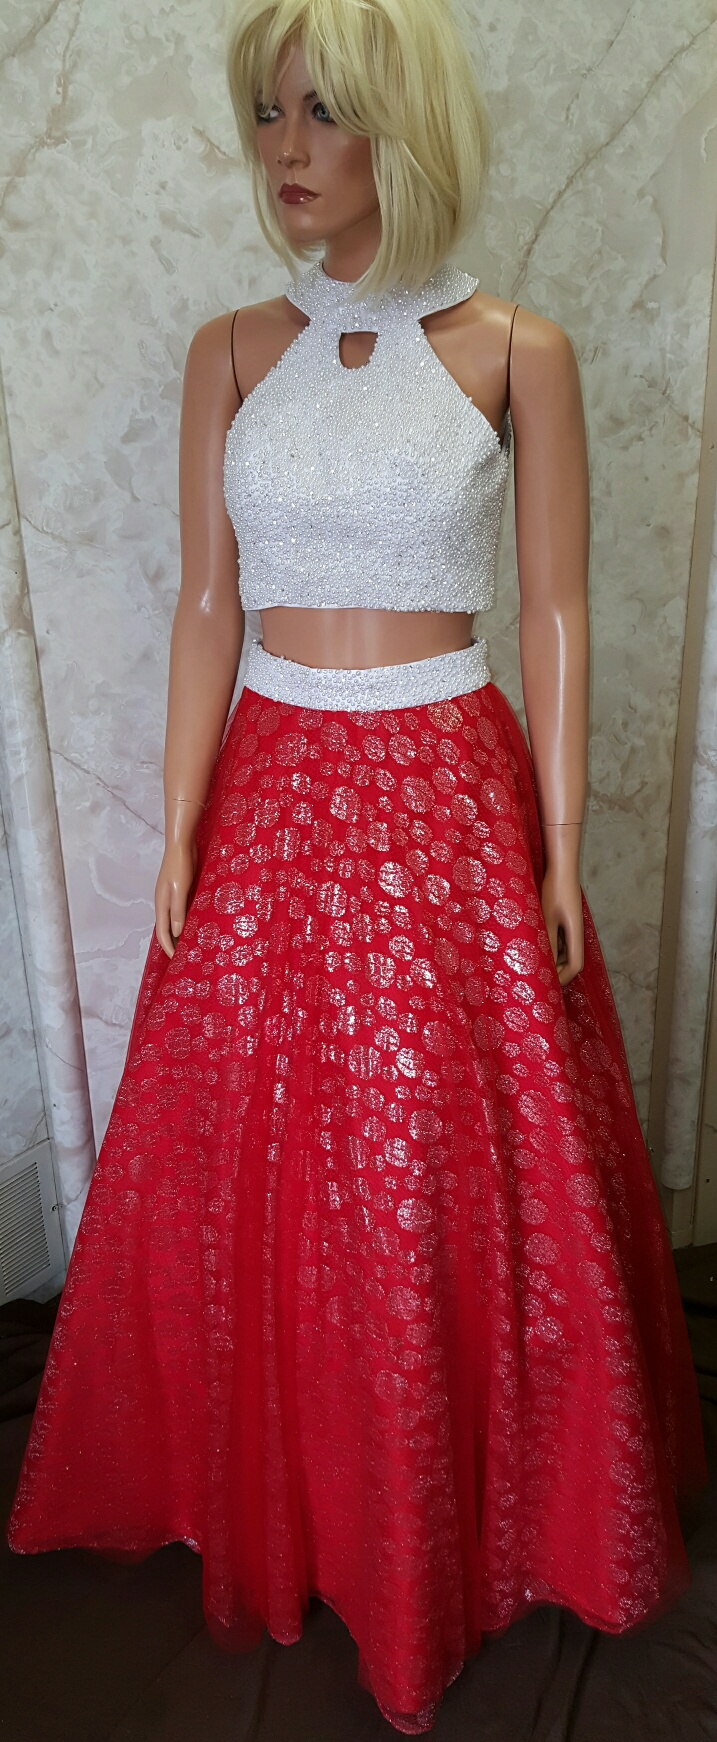 crop top dresses